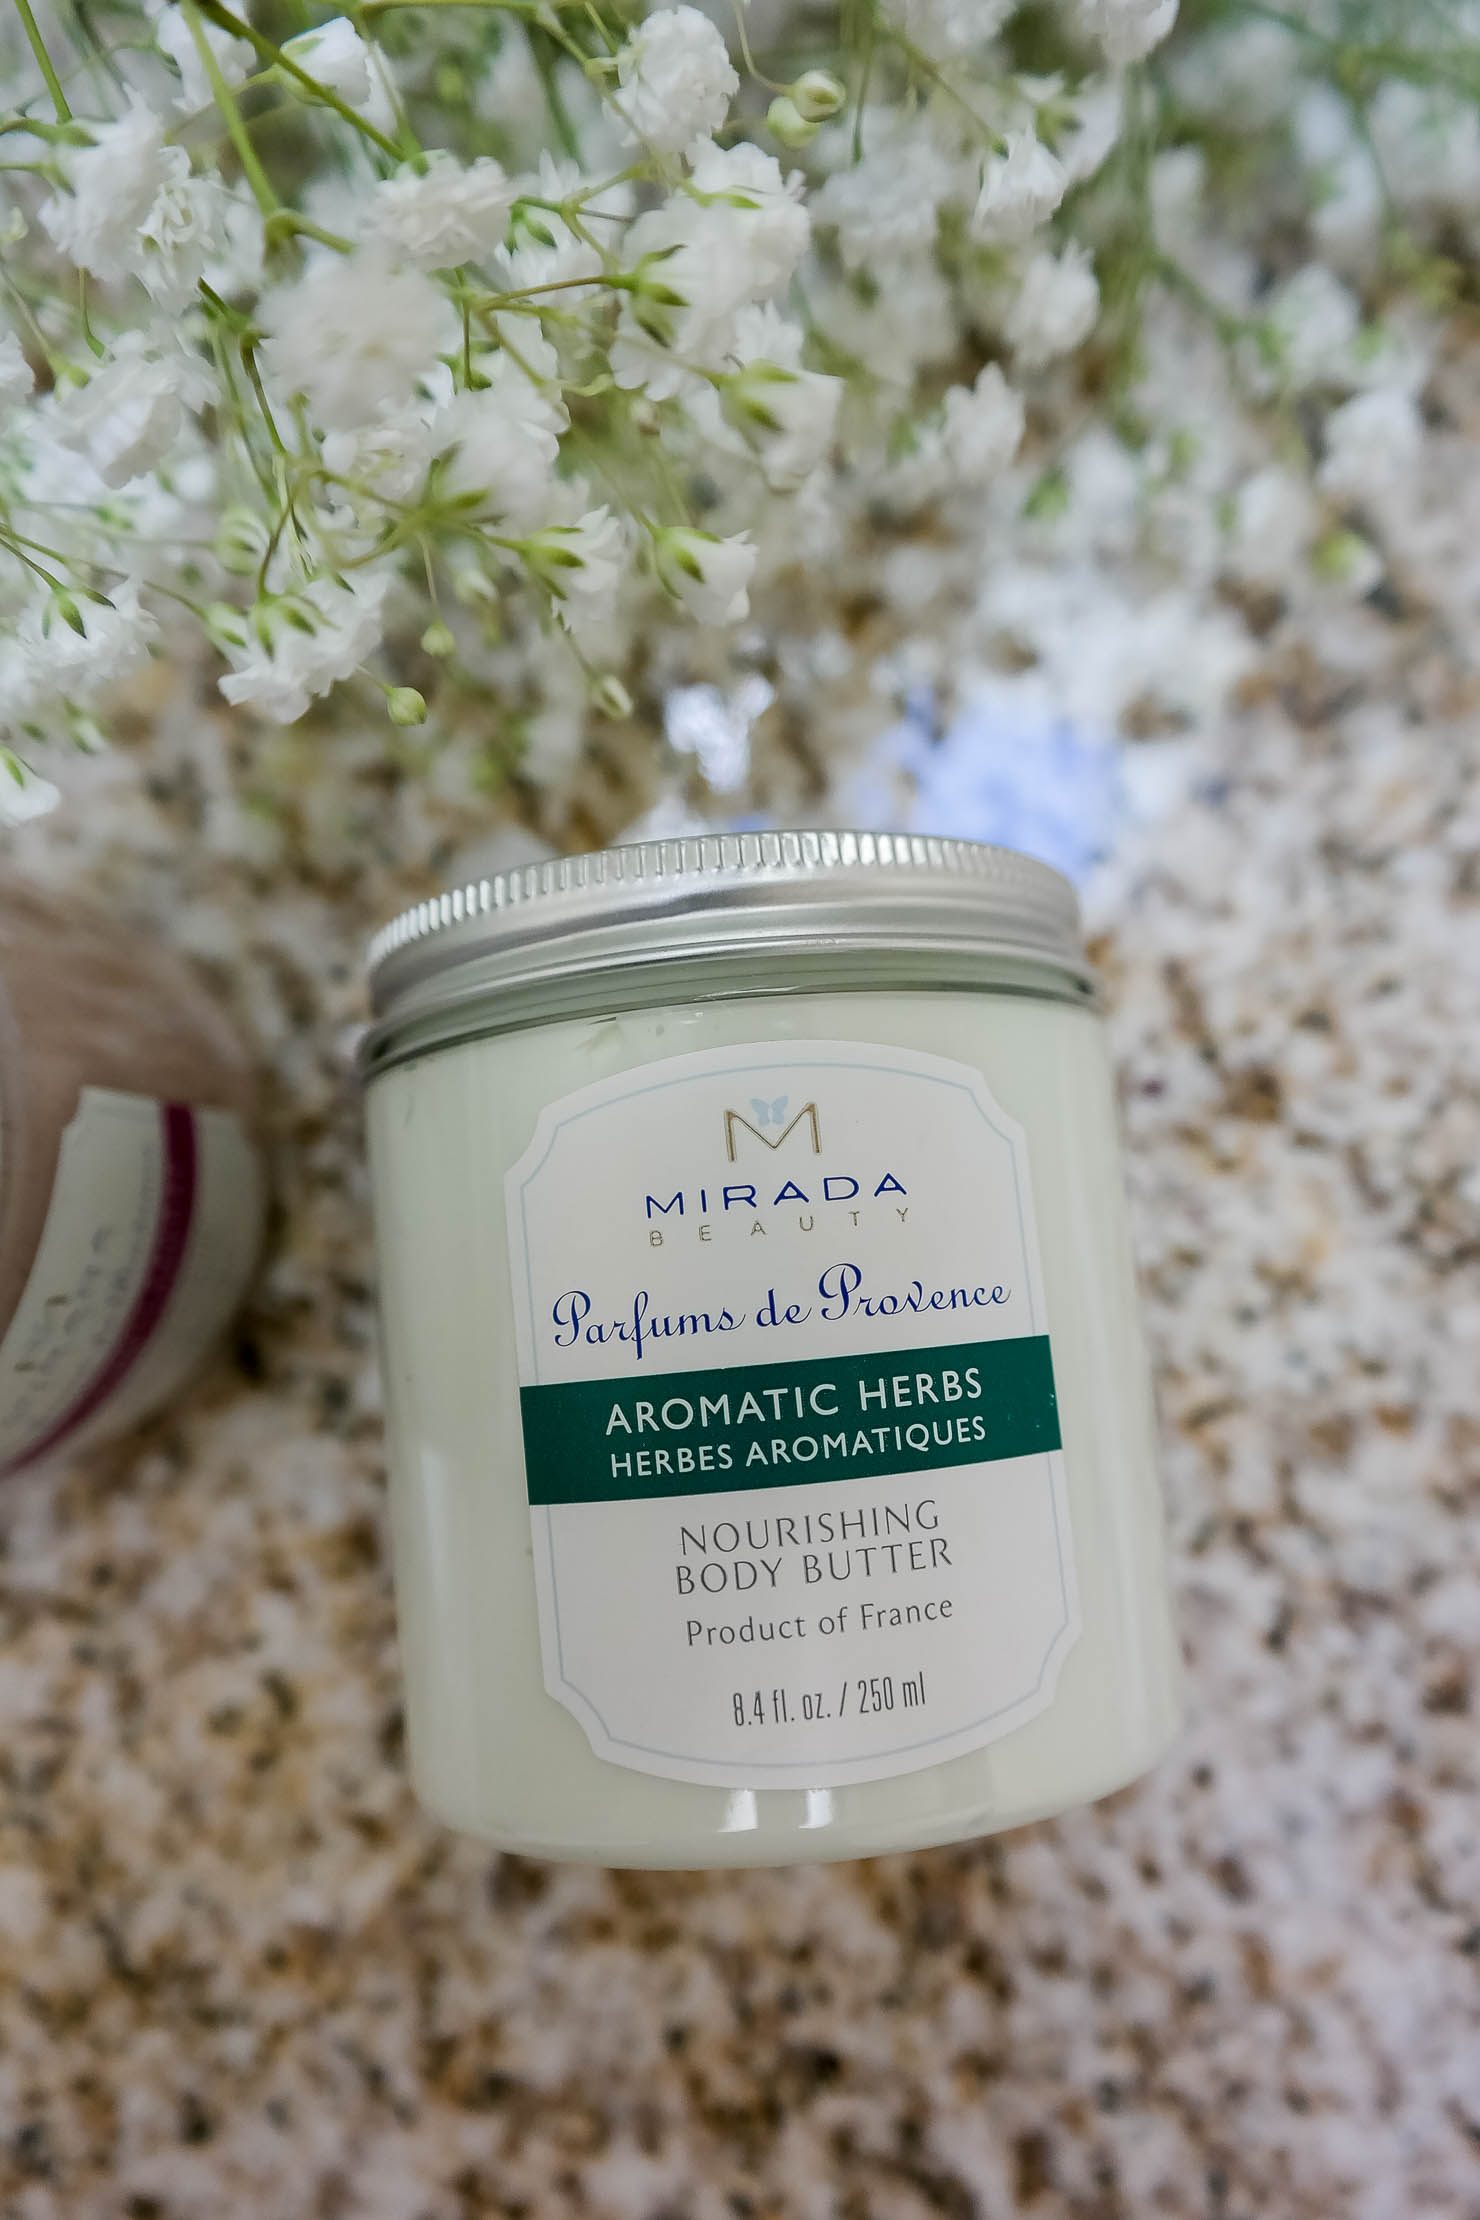 mirada-de-provence-power-of-scent-aromatherapy-body-care-beauty